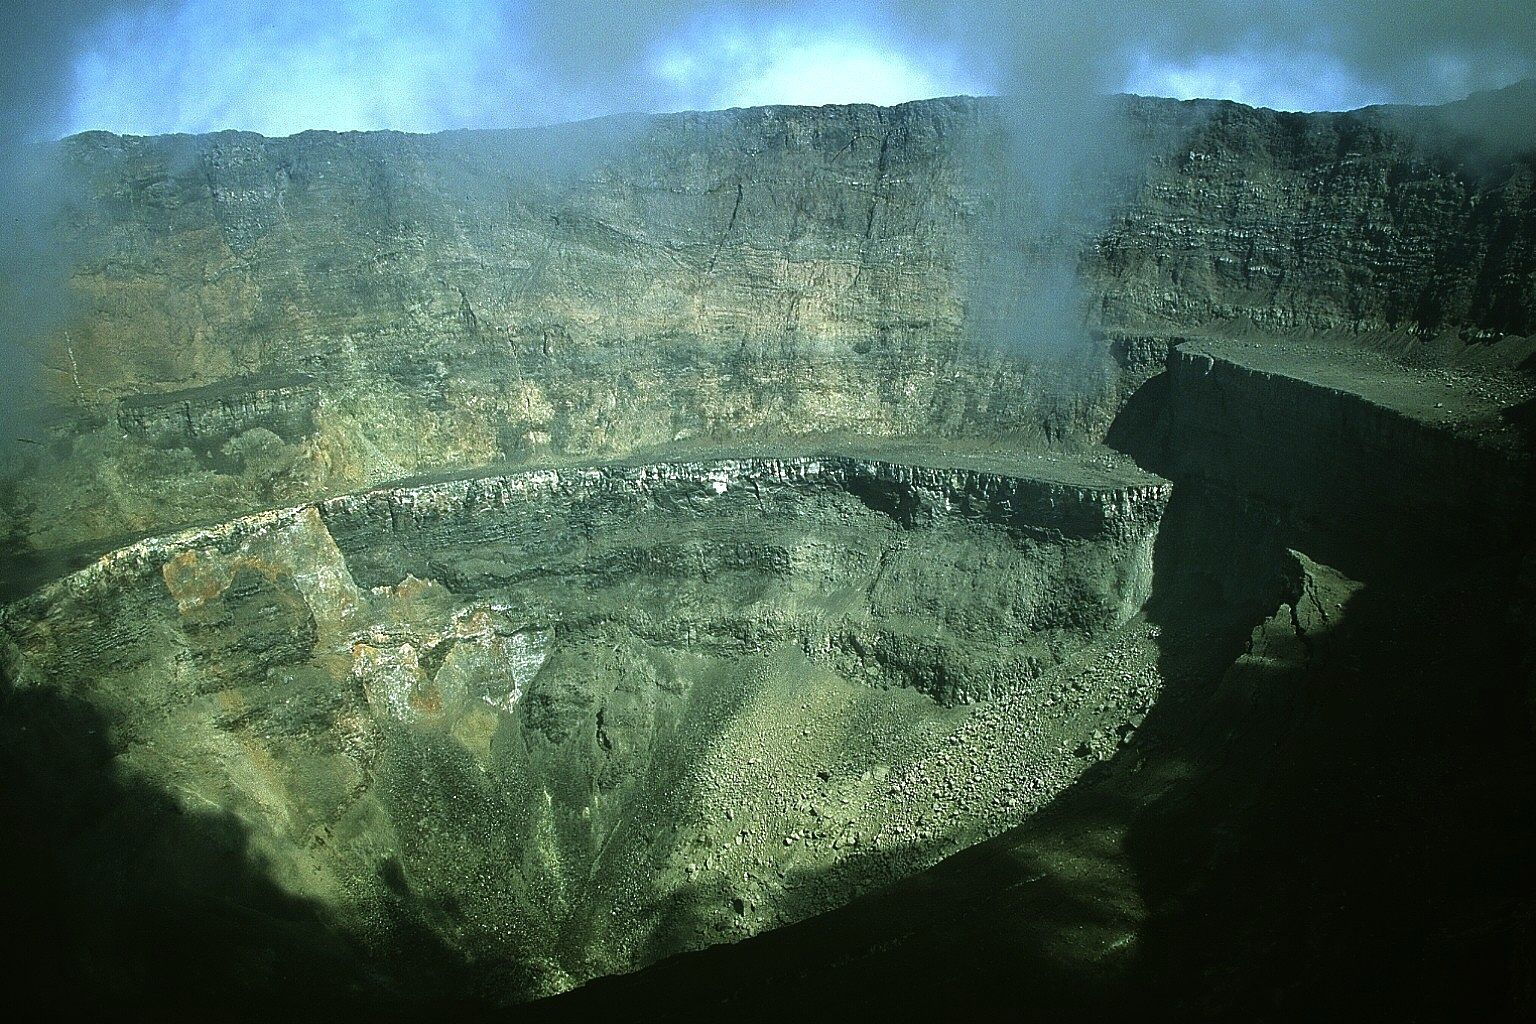 Nyiragongo - the crater after the eruption - photo J. Durieux March 2002